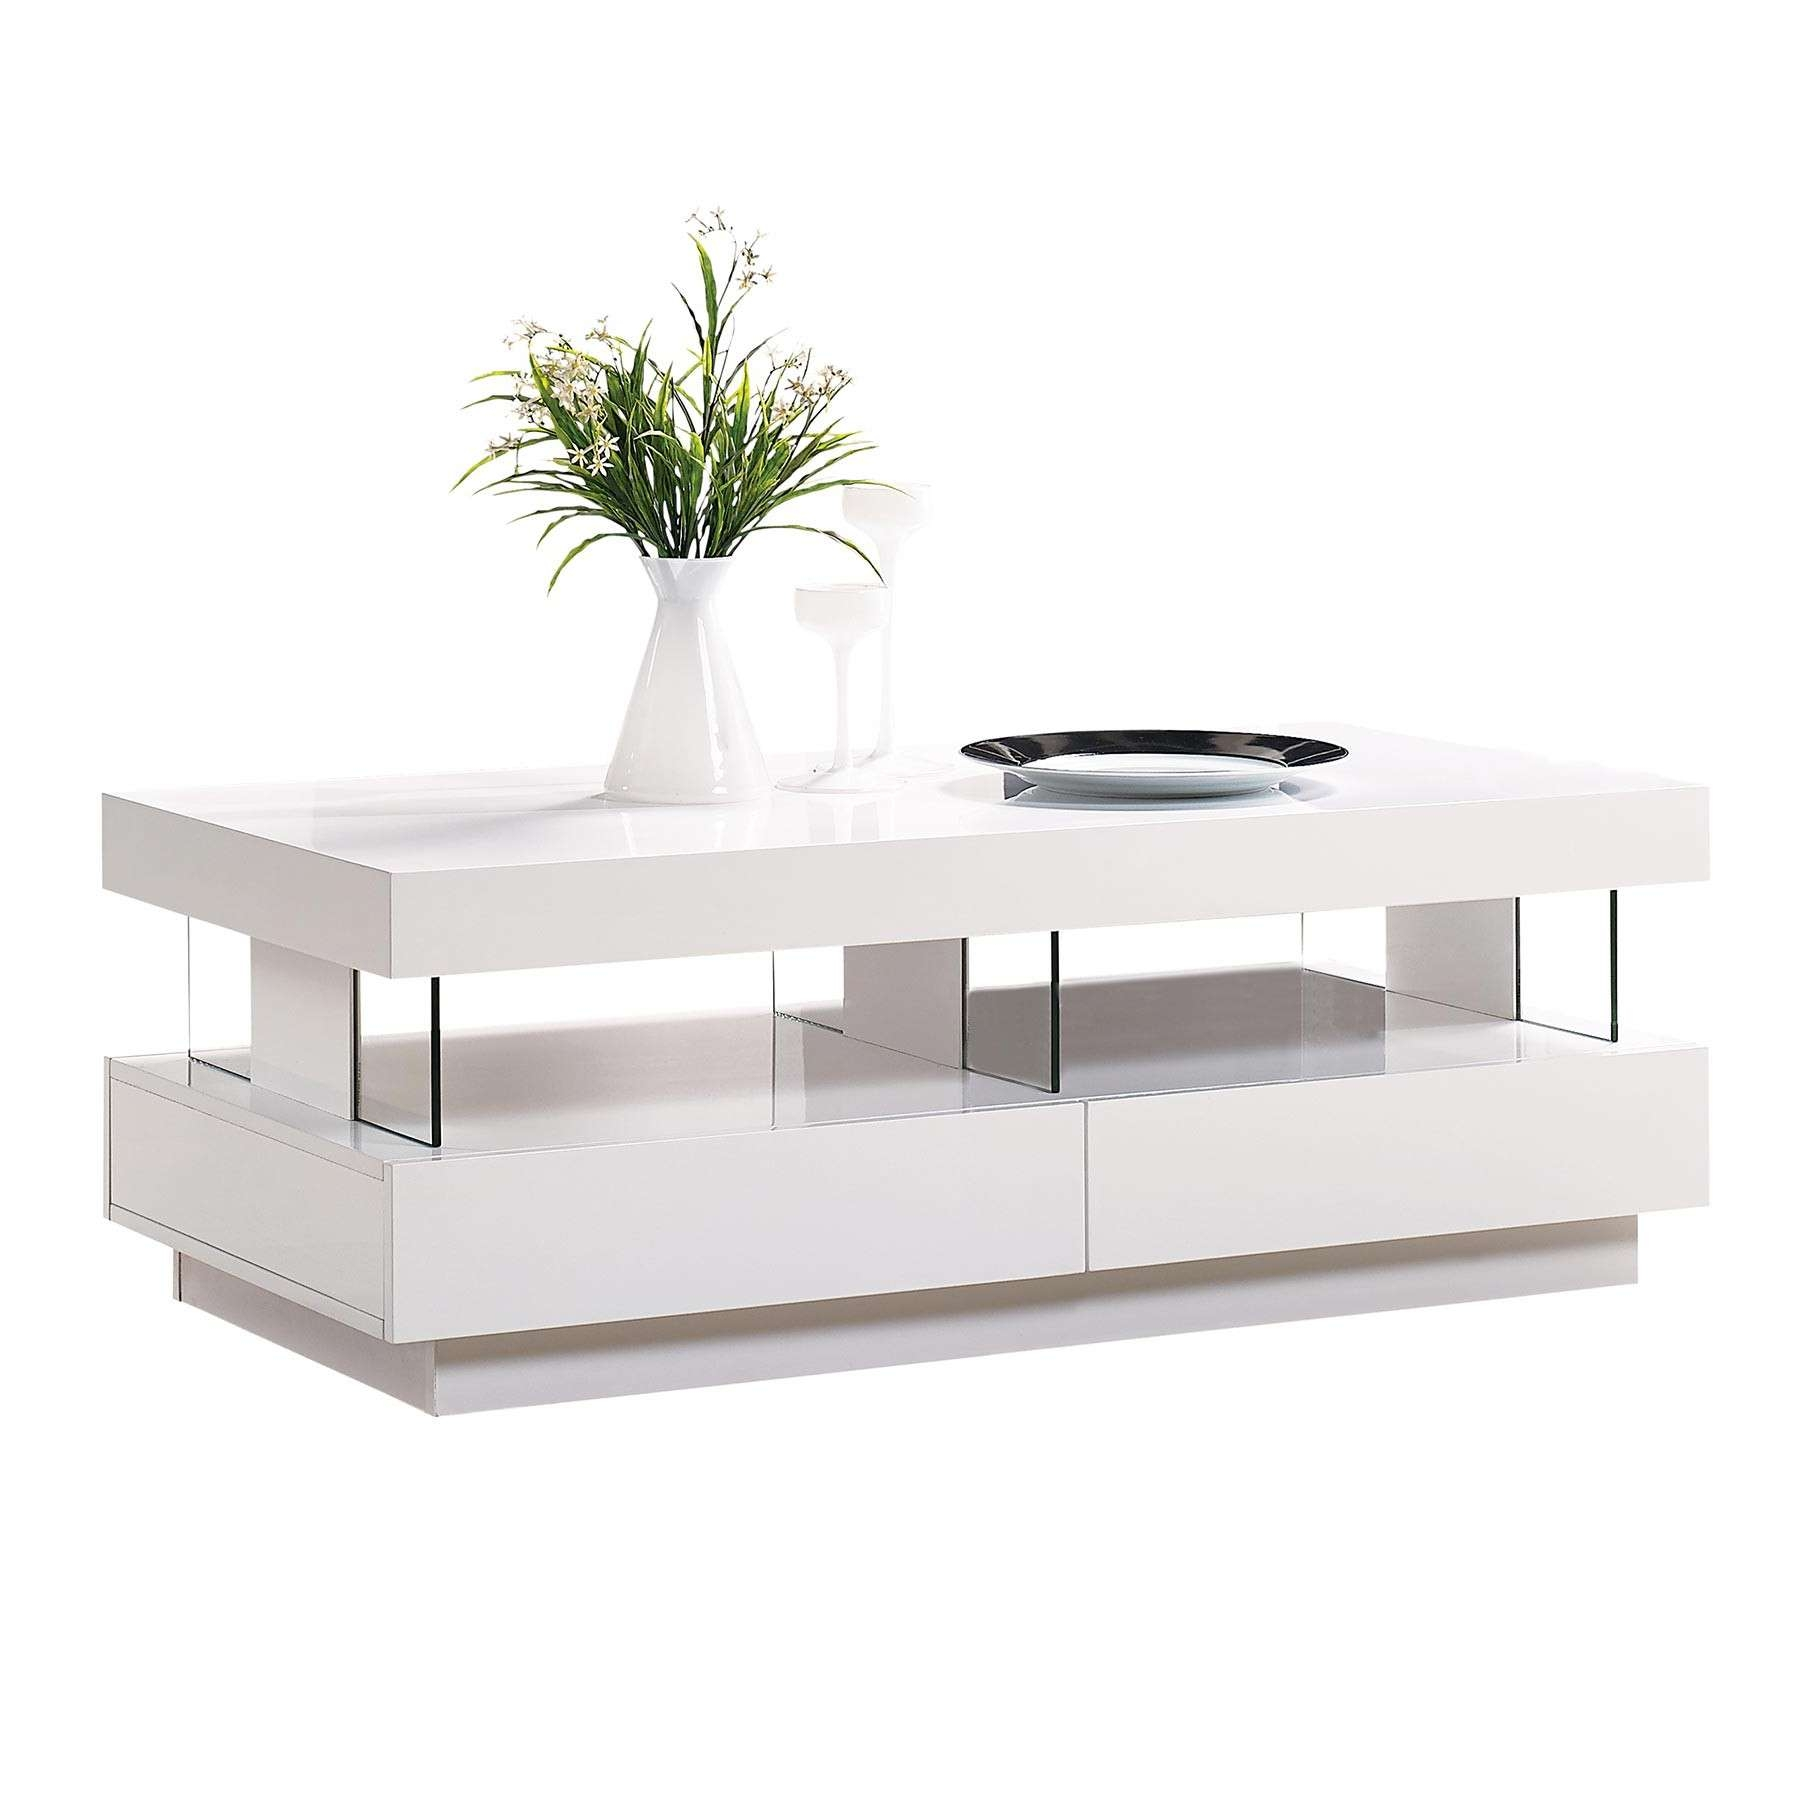 2017 Coffee Tables White High Gloss With White Gloss Coffee Table Led Light (View 4 of 20)